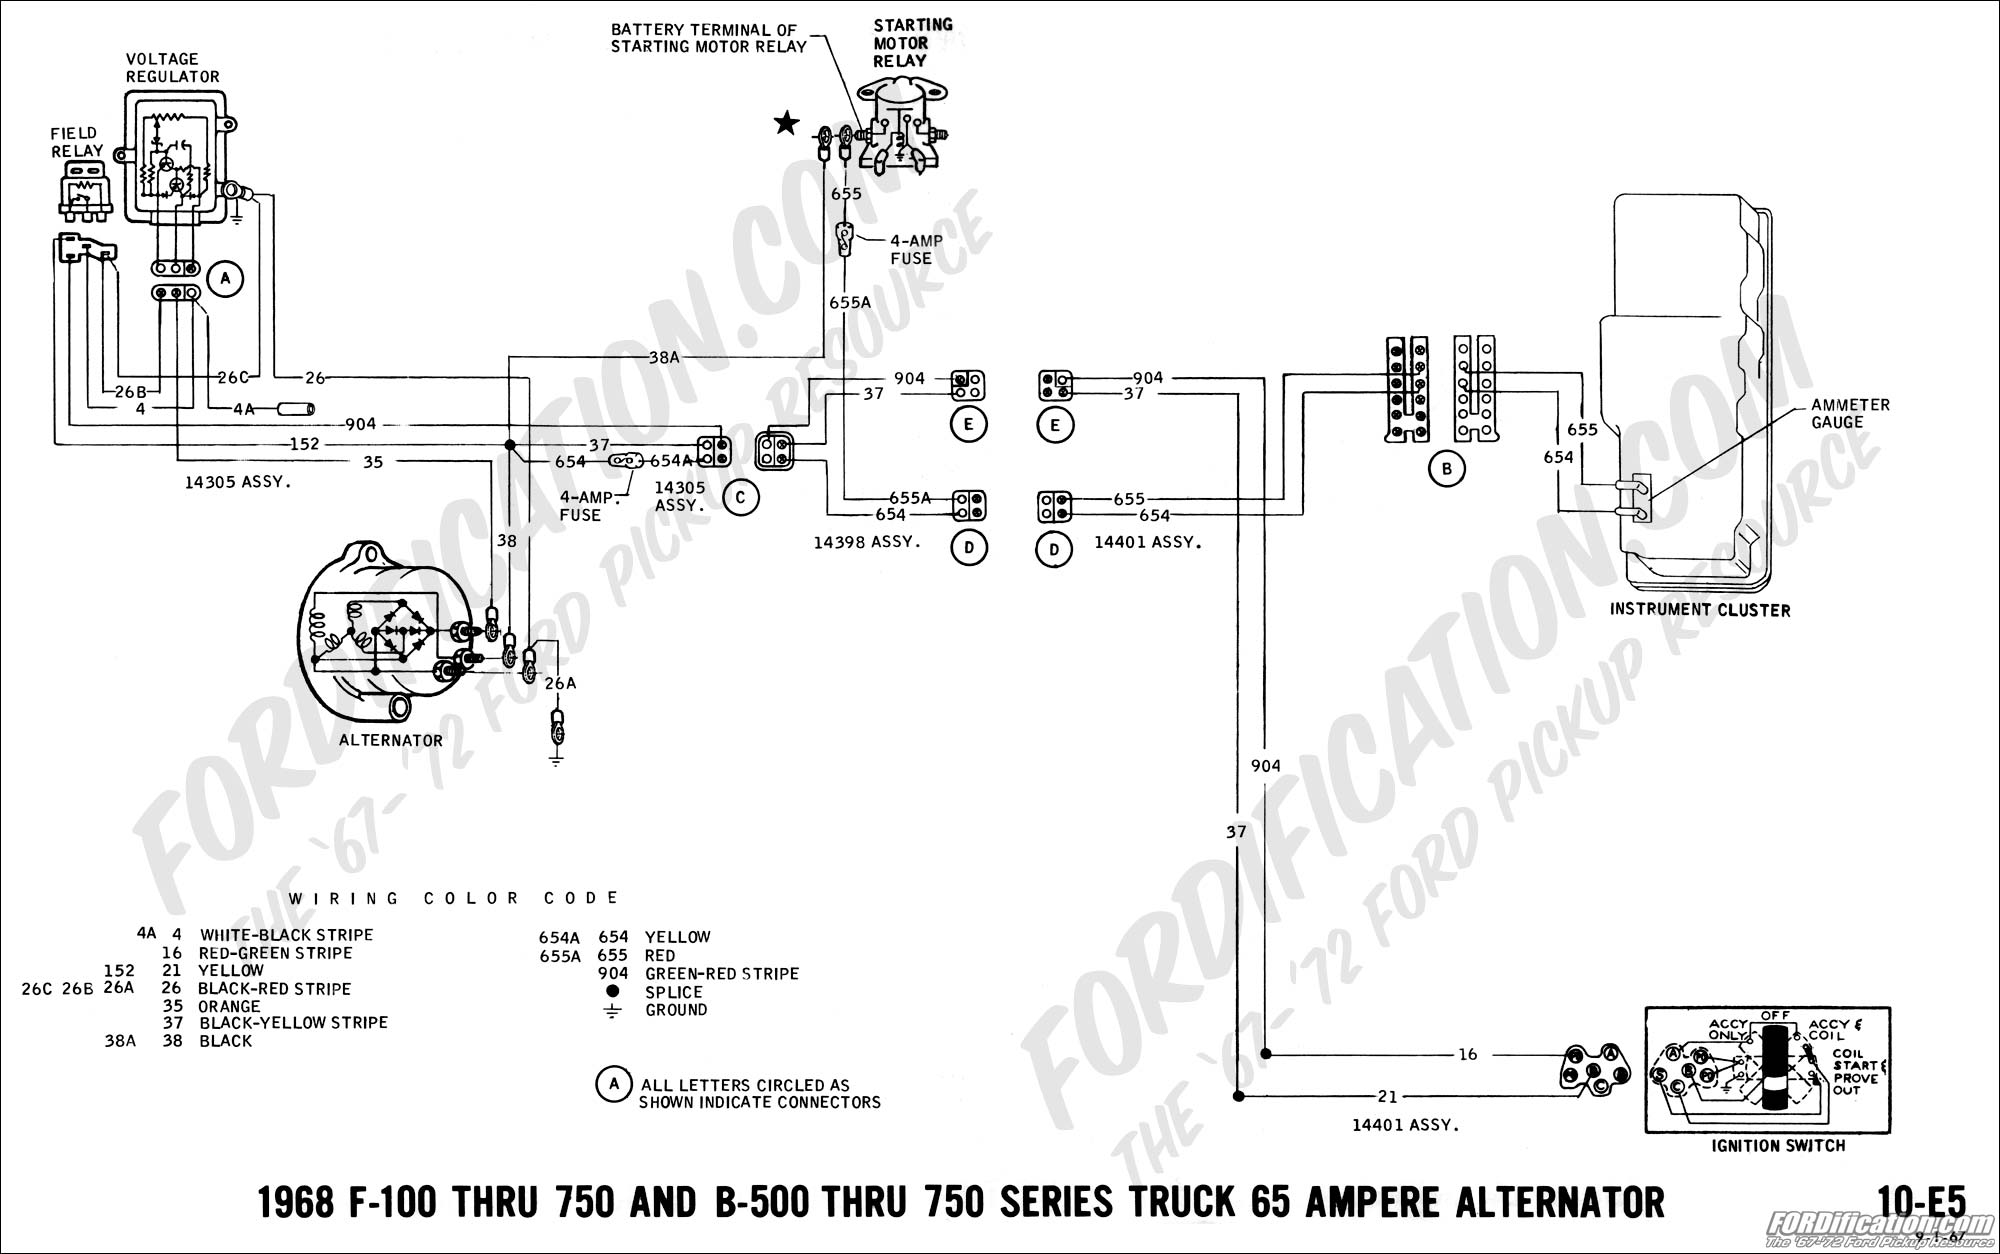 68 07 1968 ford f100 wiring diagram 1965 ford f100 alternator wiring 1965 ford mustang wiring diagrams at arjmand.co